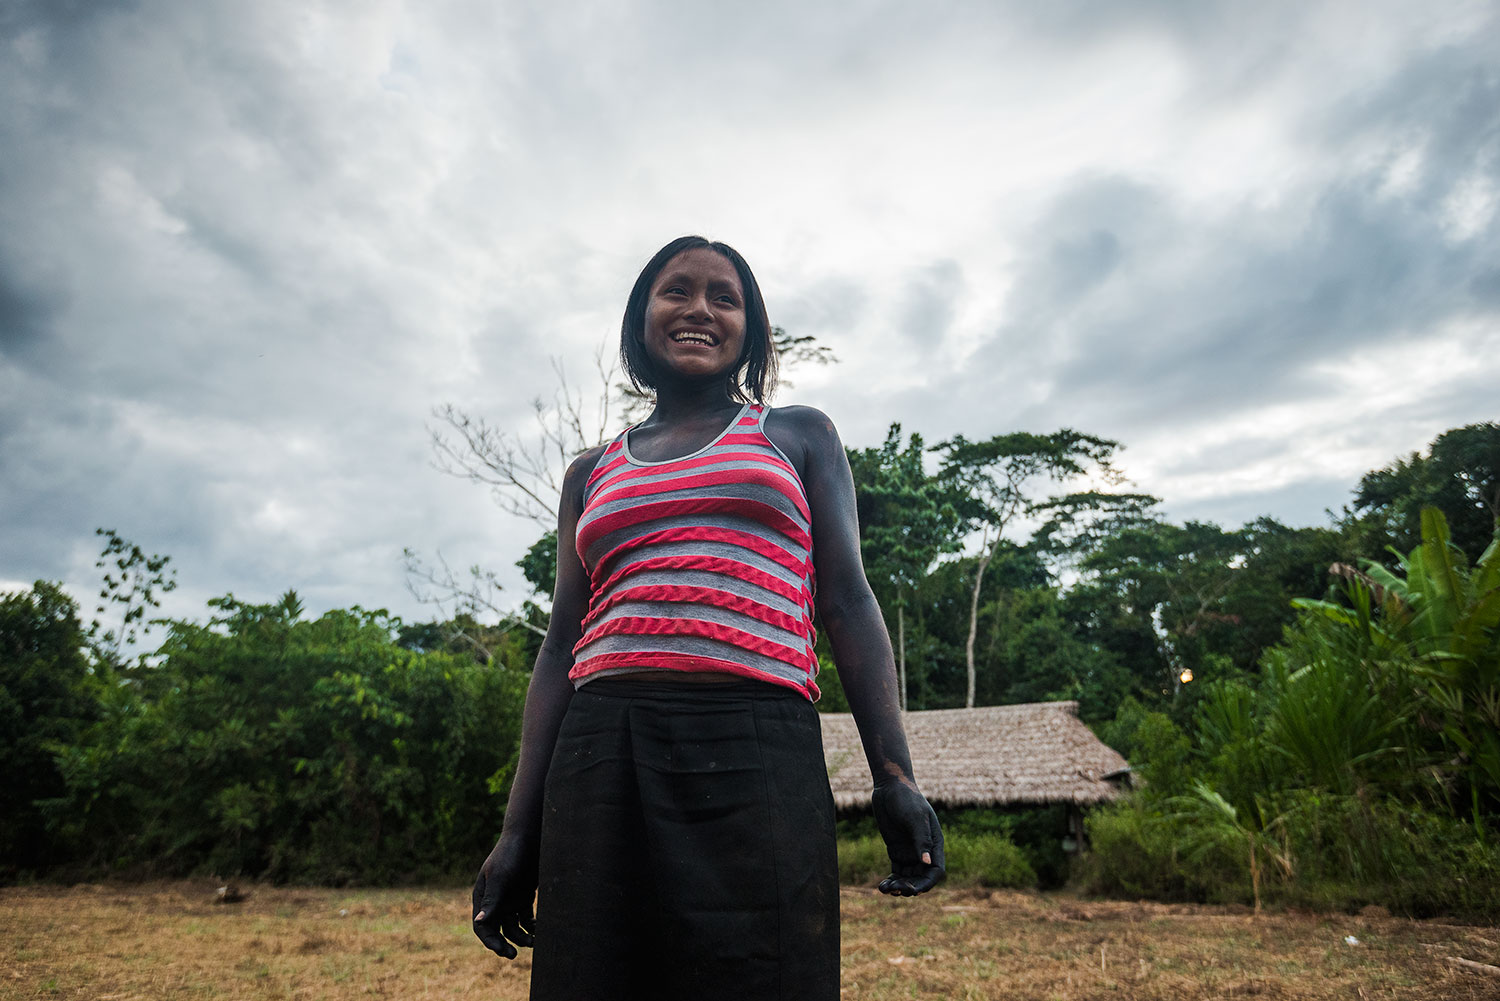 Rita Mambiro is a member of a growing number of young Matsigenka women who embrace both their traditional heritage and a changing role for women in their society. Photo: Lina Collado